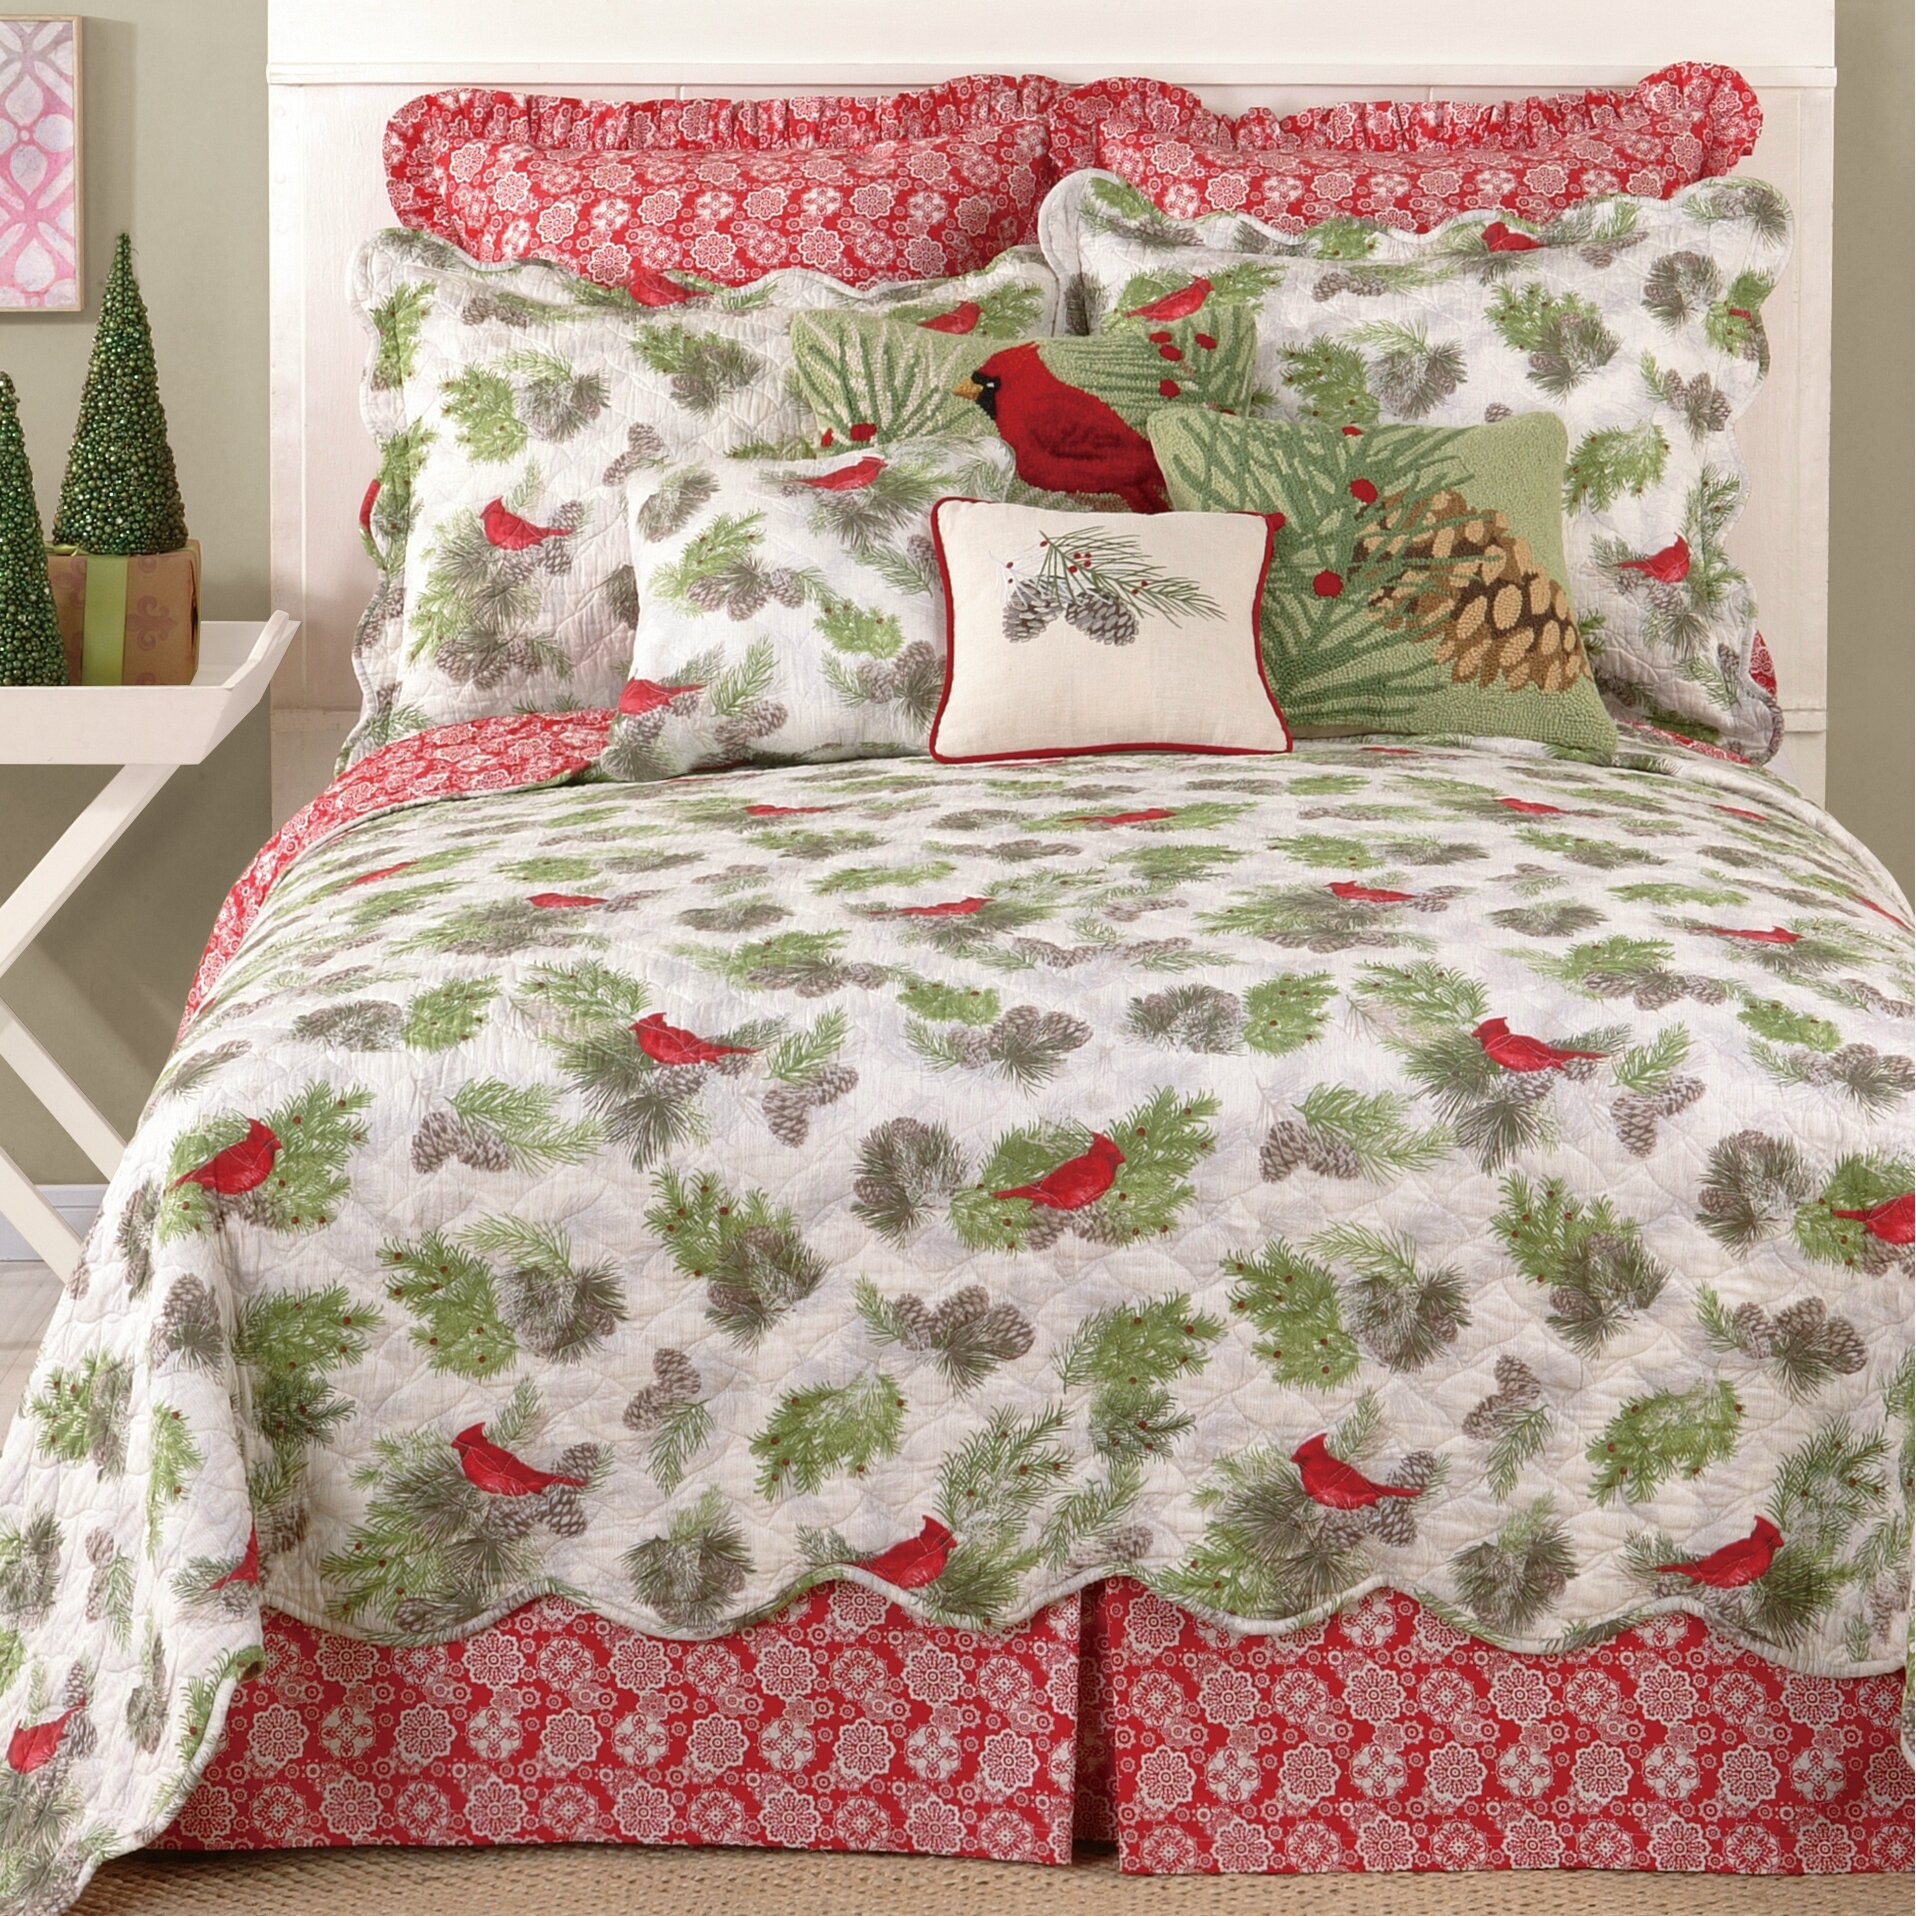 Laurel And Mayfair Winter Bird Reversible Quilt Amp Reviews